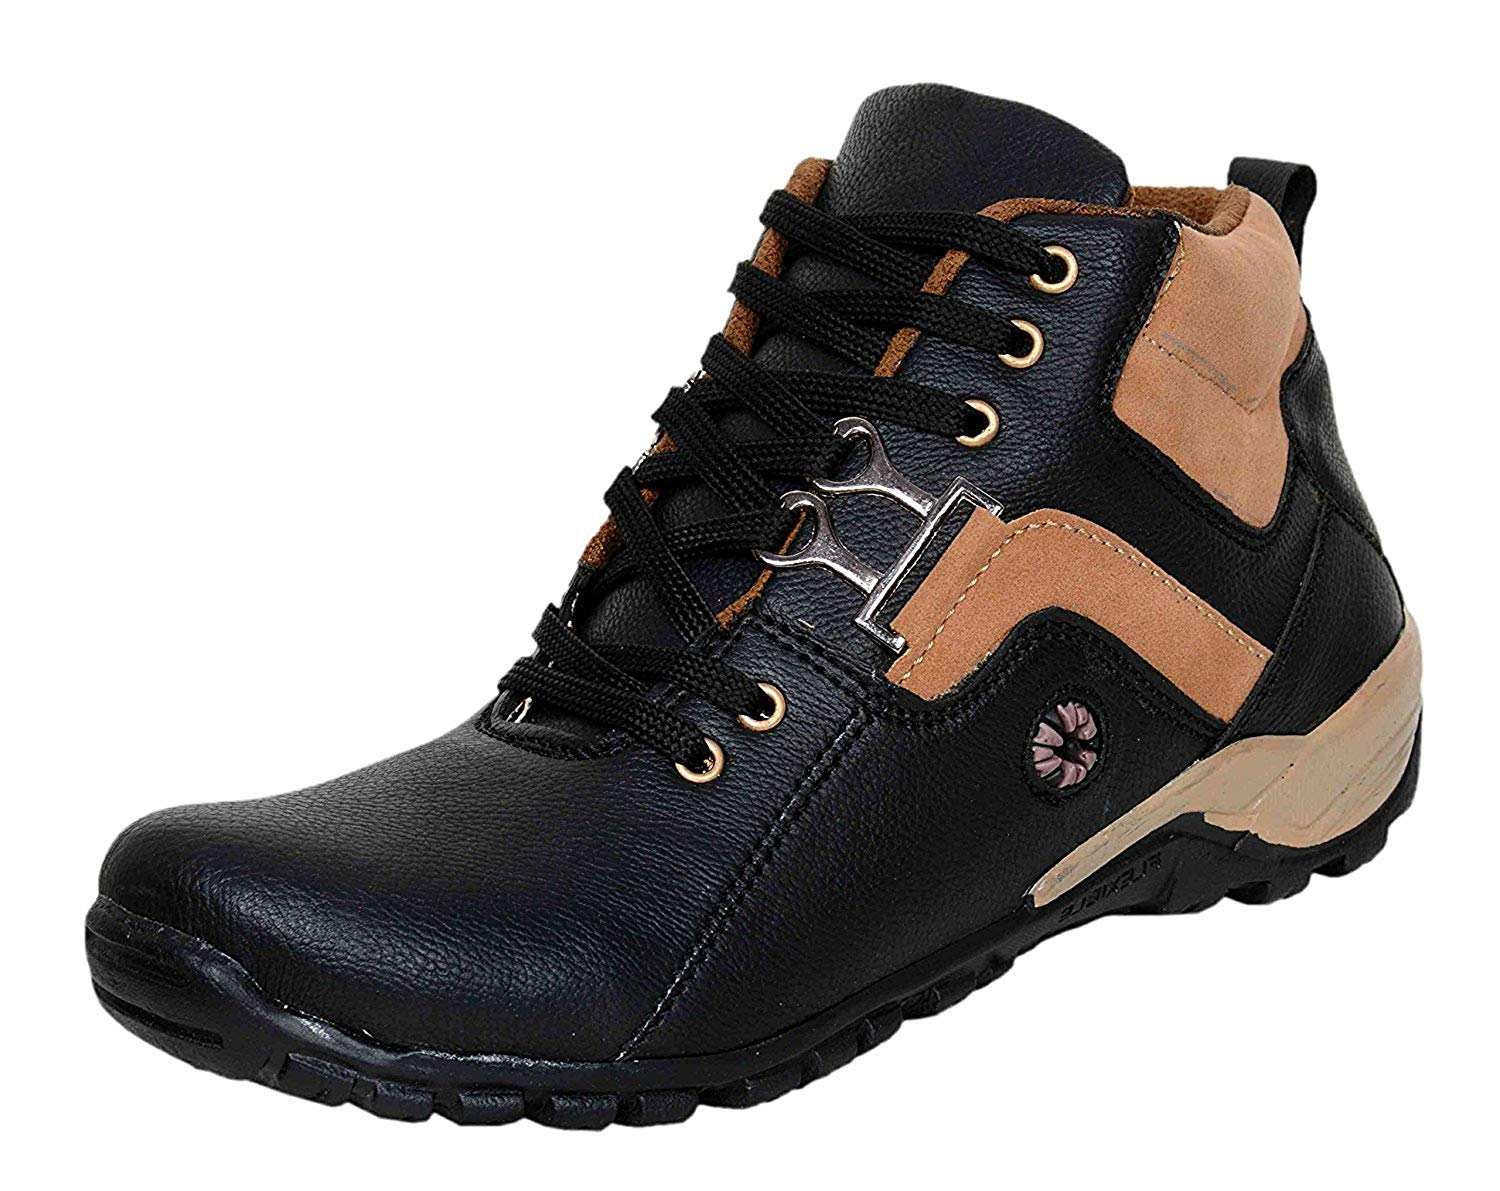 MOONSTER Stylish Men's Synthetic Leather Mid Ankle Length Boots Shoes for Men and Boys